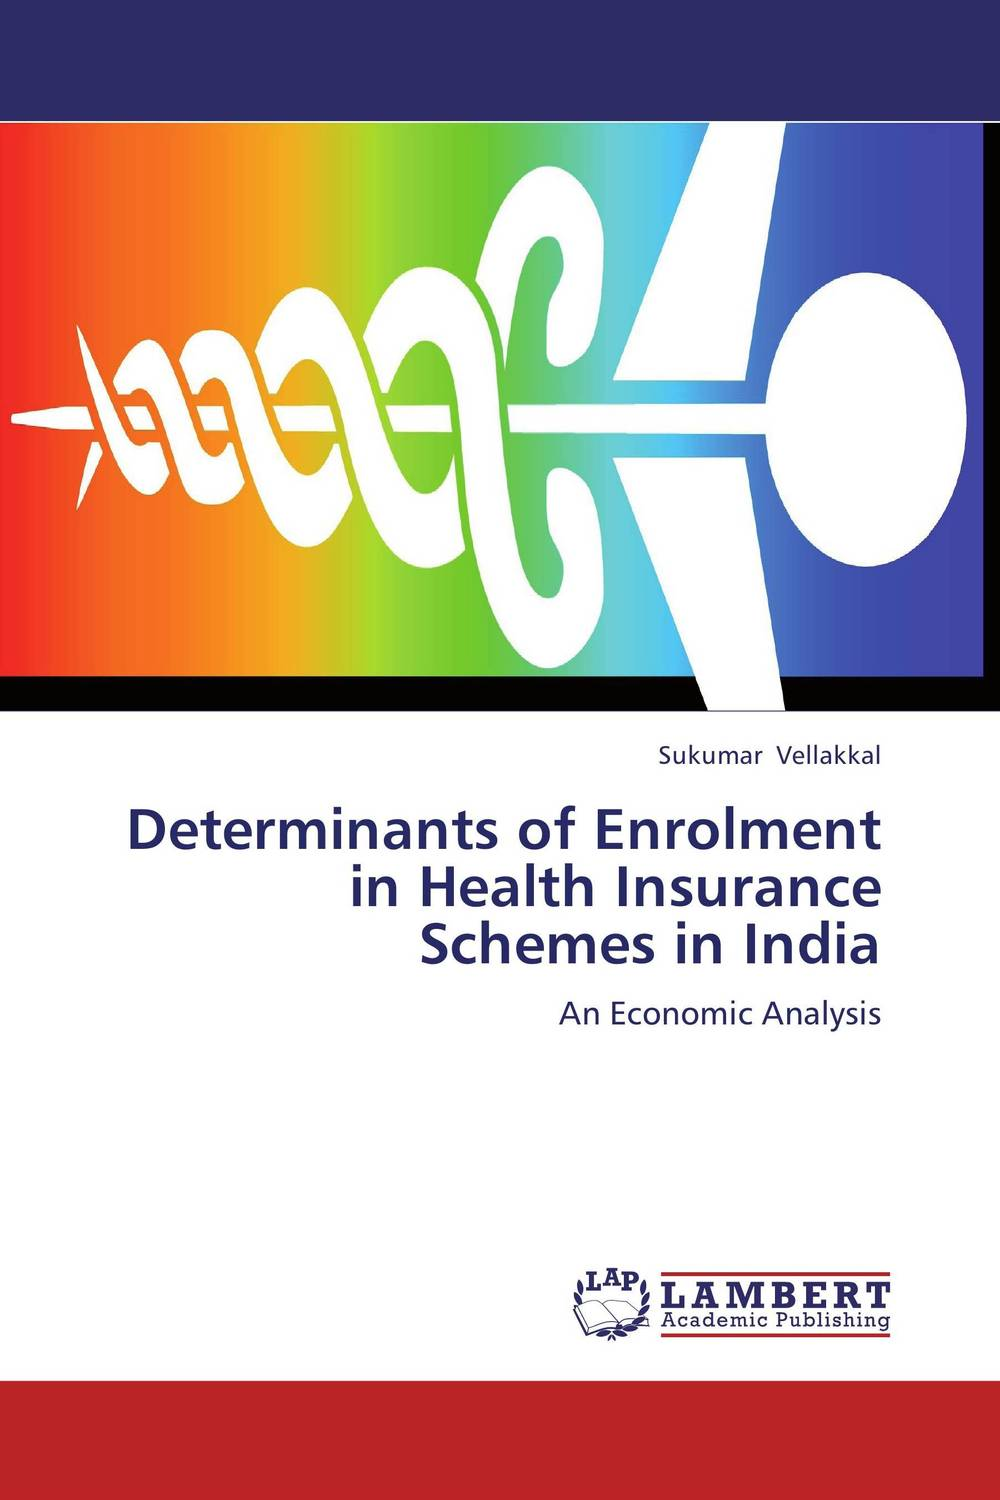 Determinants of Enrolment in Health Insurance Schemes in India financial performance analysis of general insurance companies in india